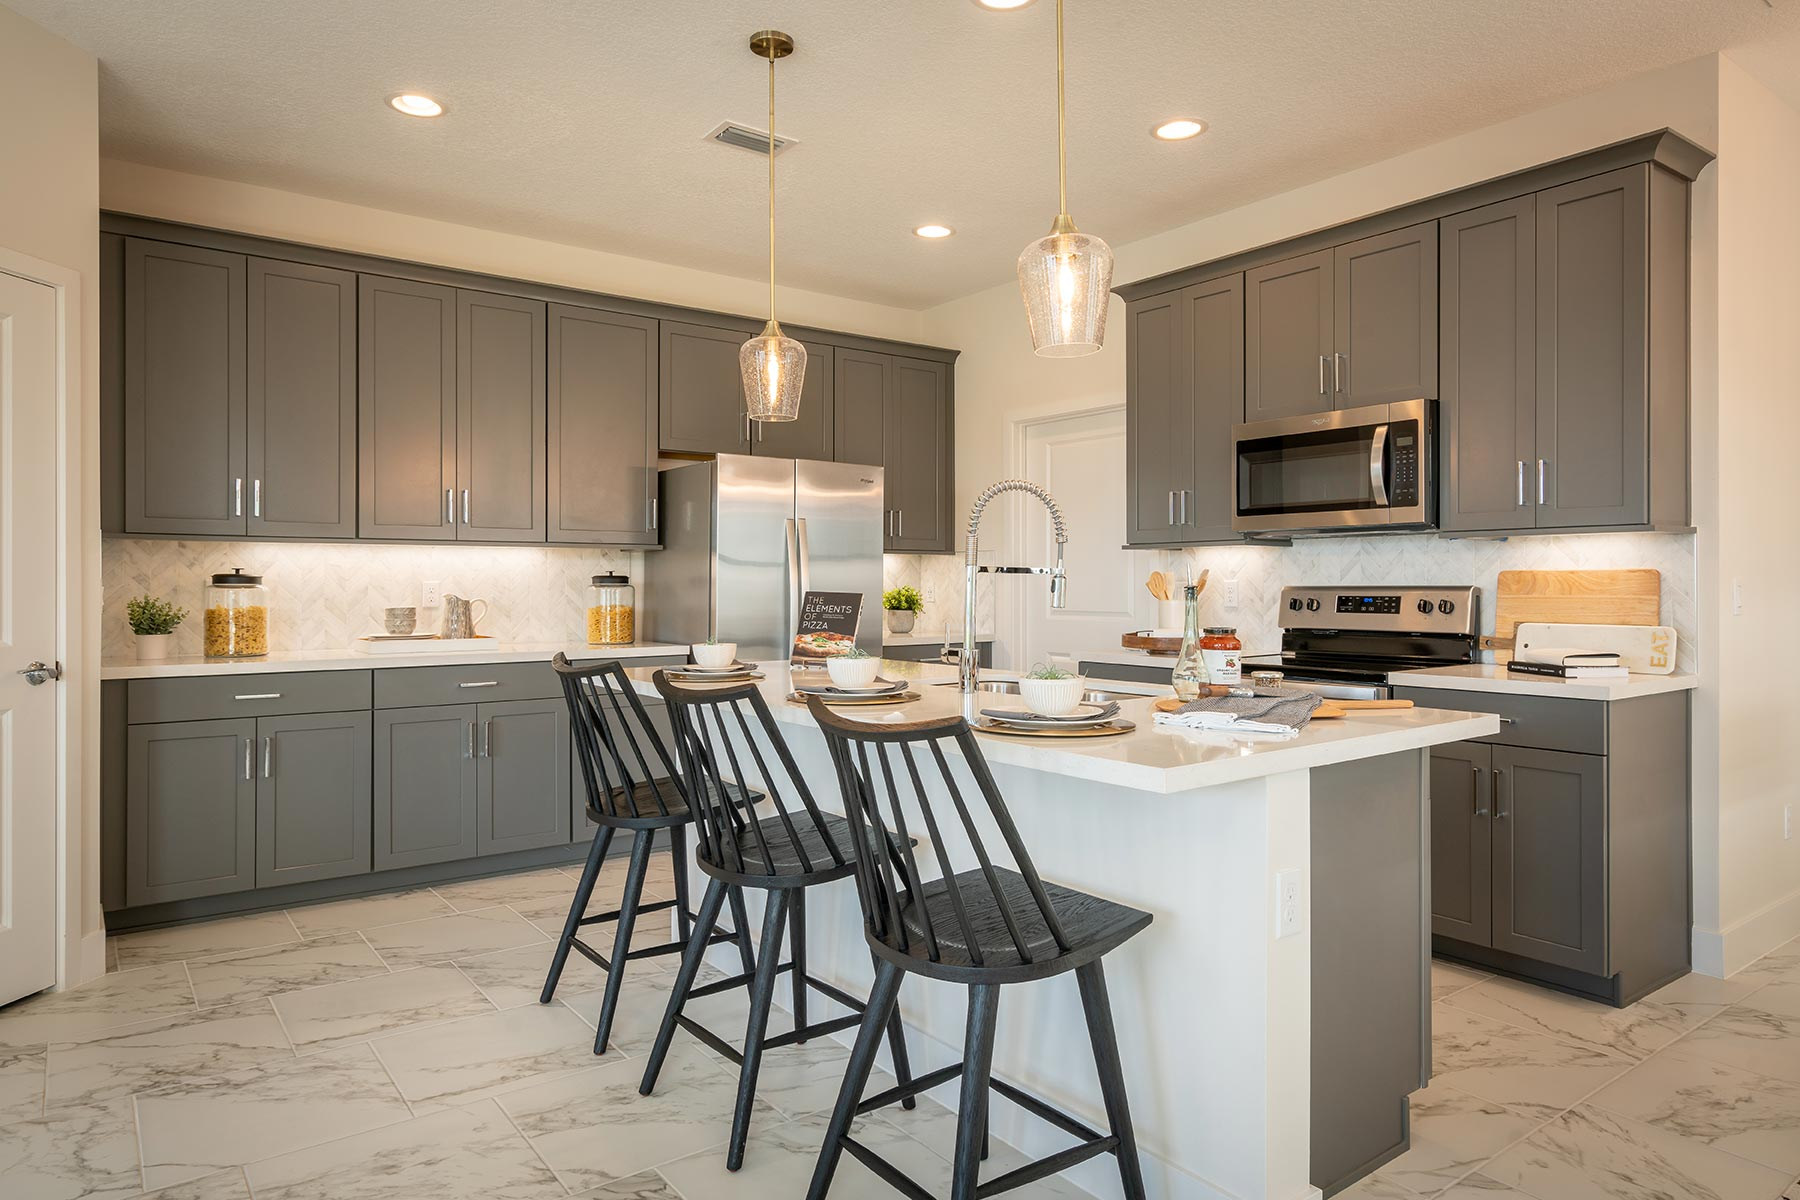 Ellery Plan Kitchen at Saddlewood in Lake Worth Florida by Mattamy Homes